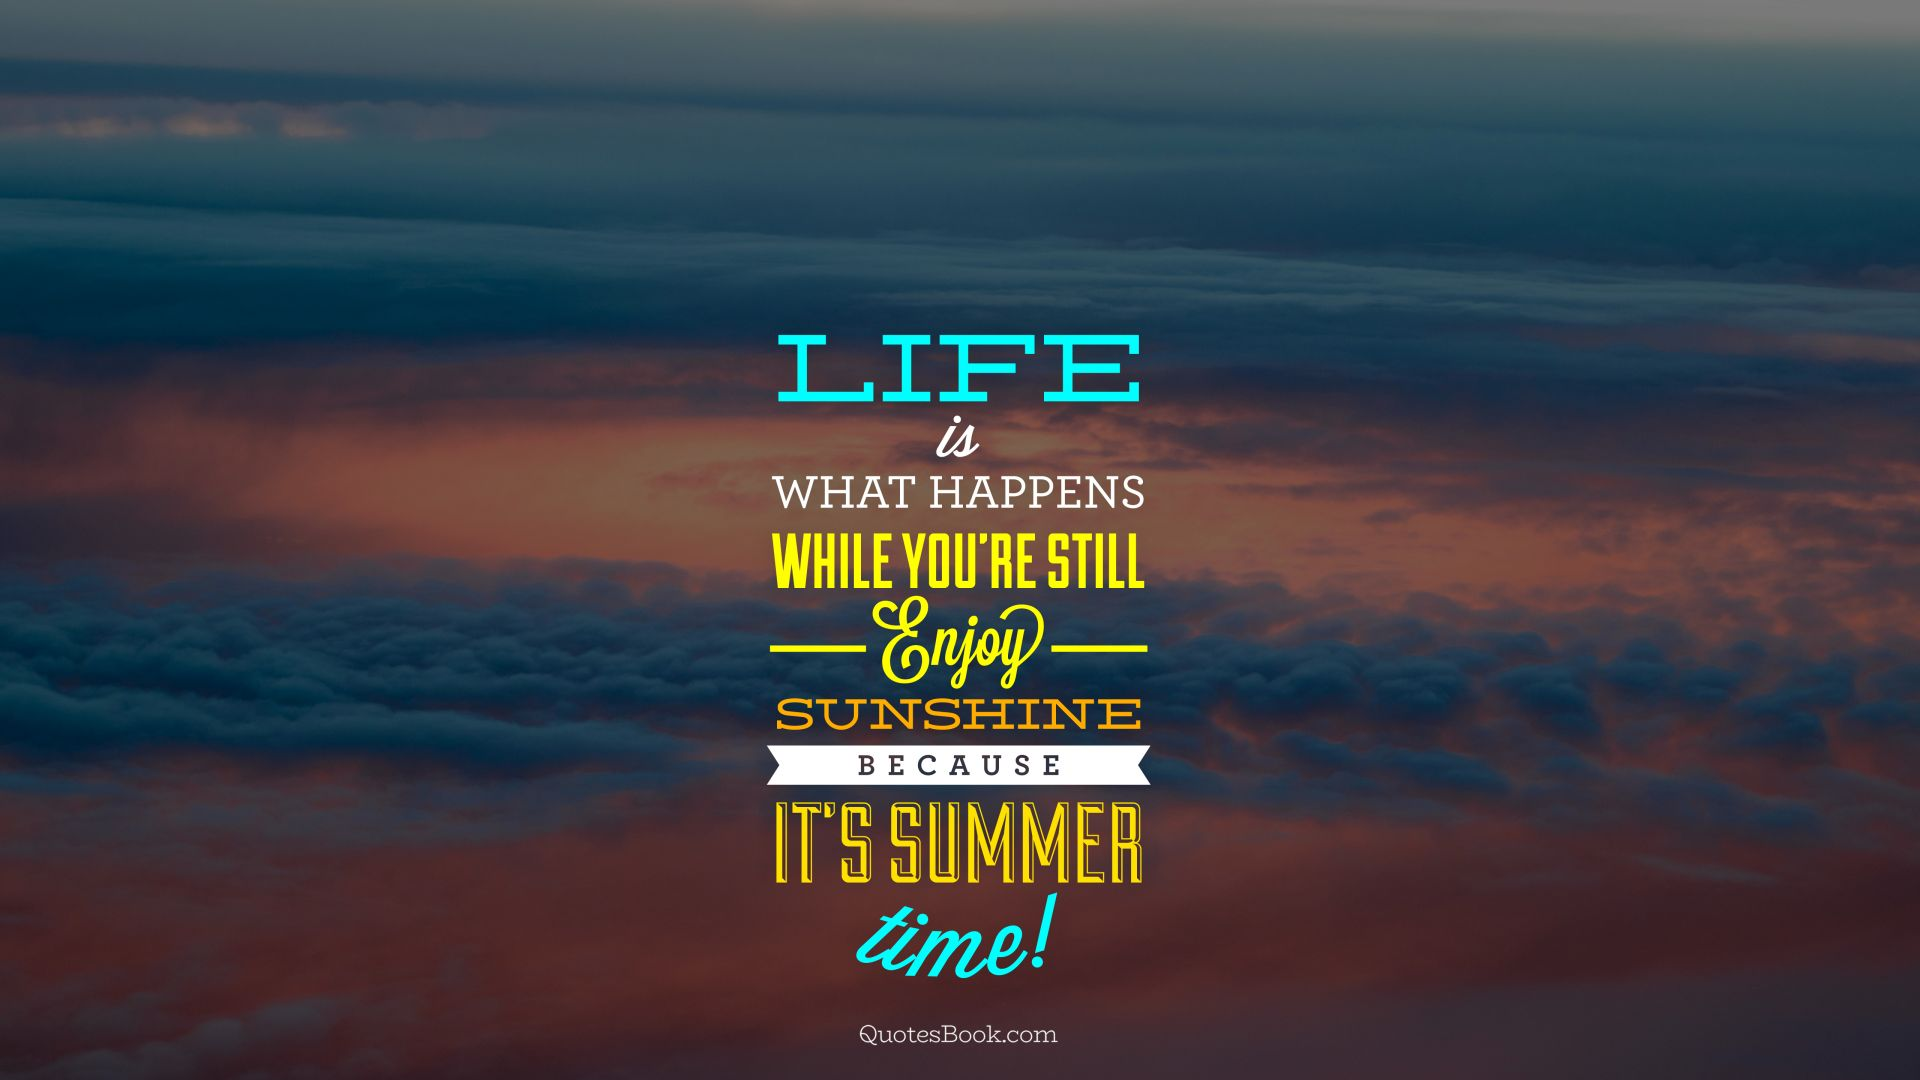 Life is what happens while you're still enjoy sunshine because it's summer time